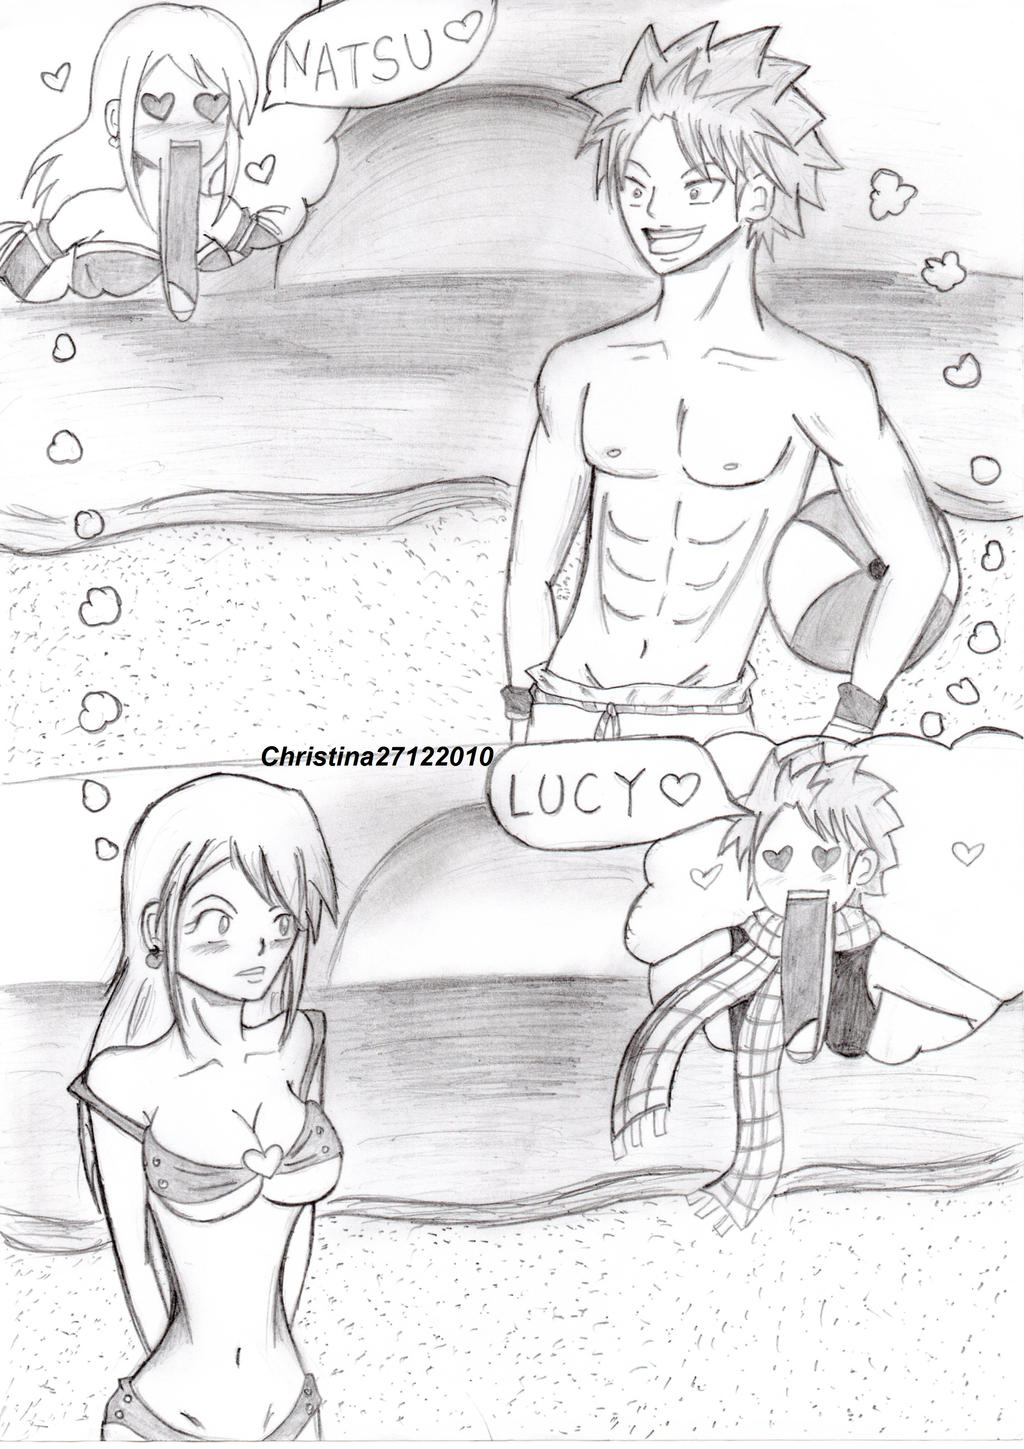 NaLu at the beach by Christina27122010